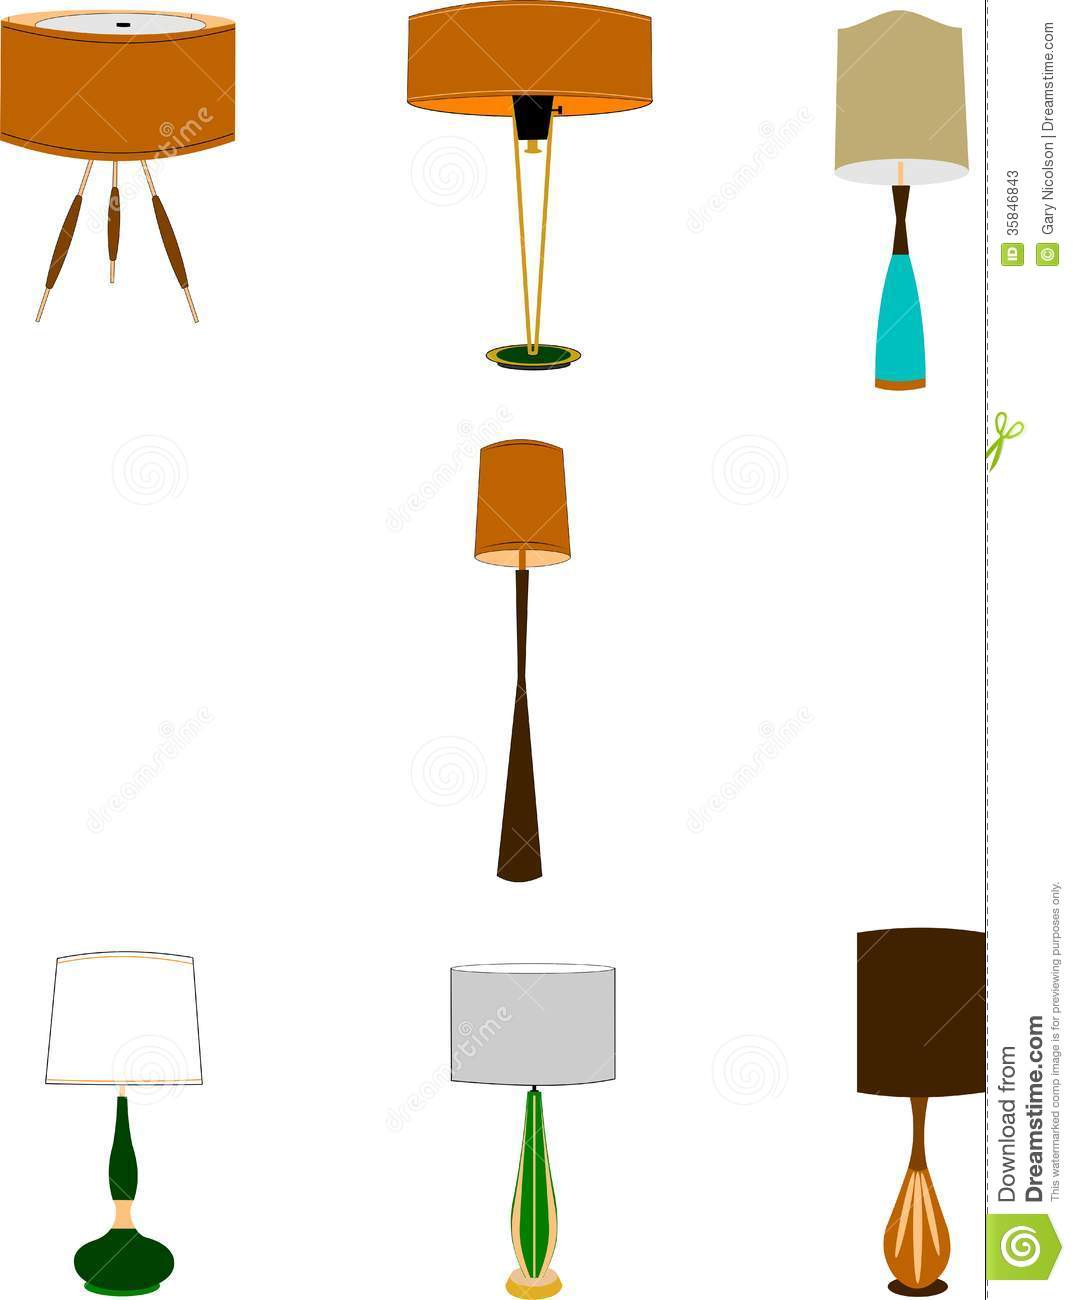 Retro style hopusehold lamps